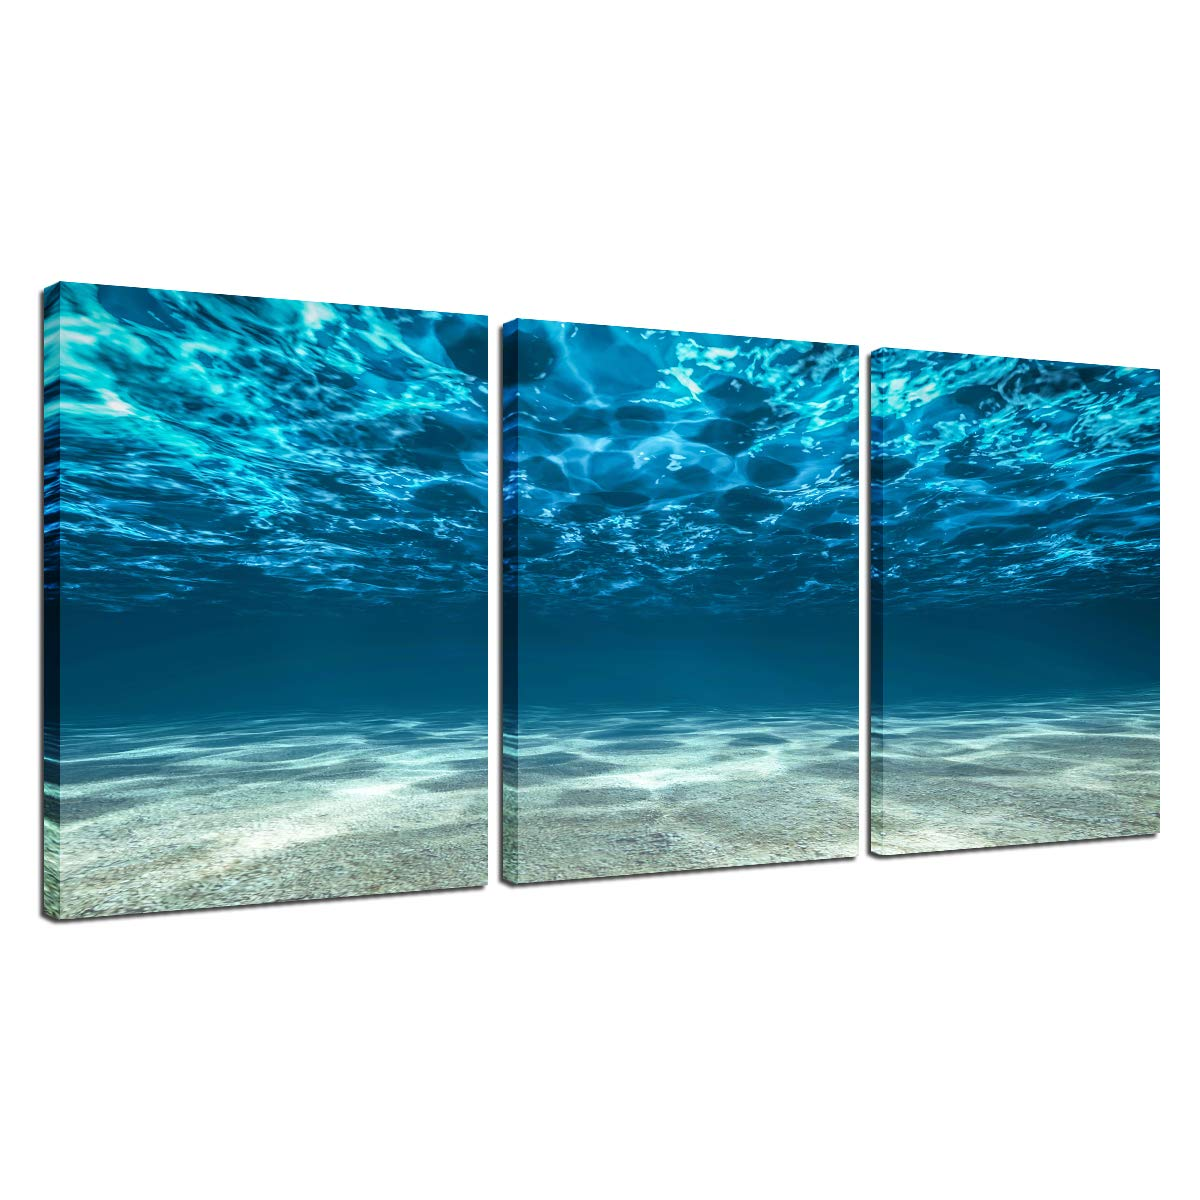 Ocean Sea Canvas Wall Art - Home Office Decor 3 Panel Blue Seaview Bottom View Beneath Surface Seacape Poster Bedroom Kitchen Picture Frame Modern Painting for Living Room Decoration Ready to Hang